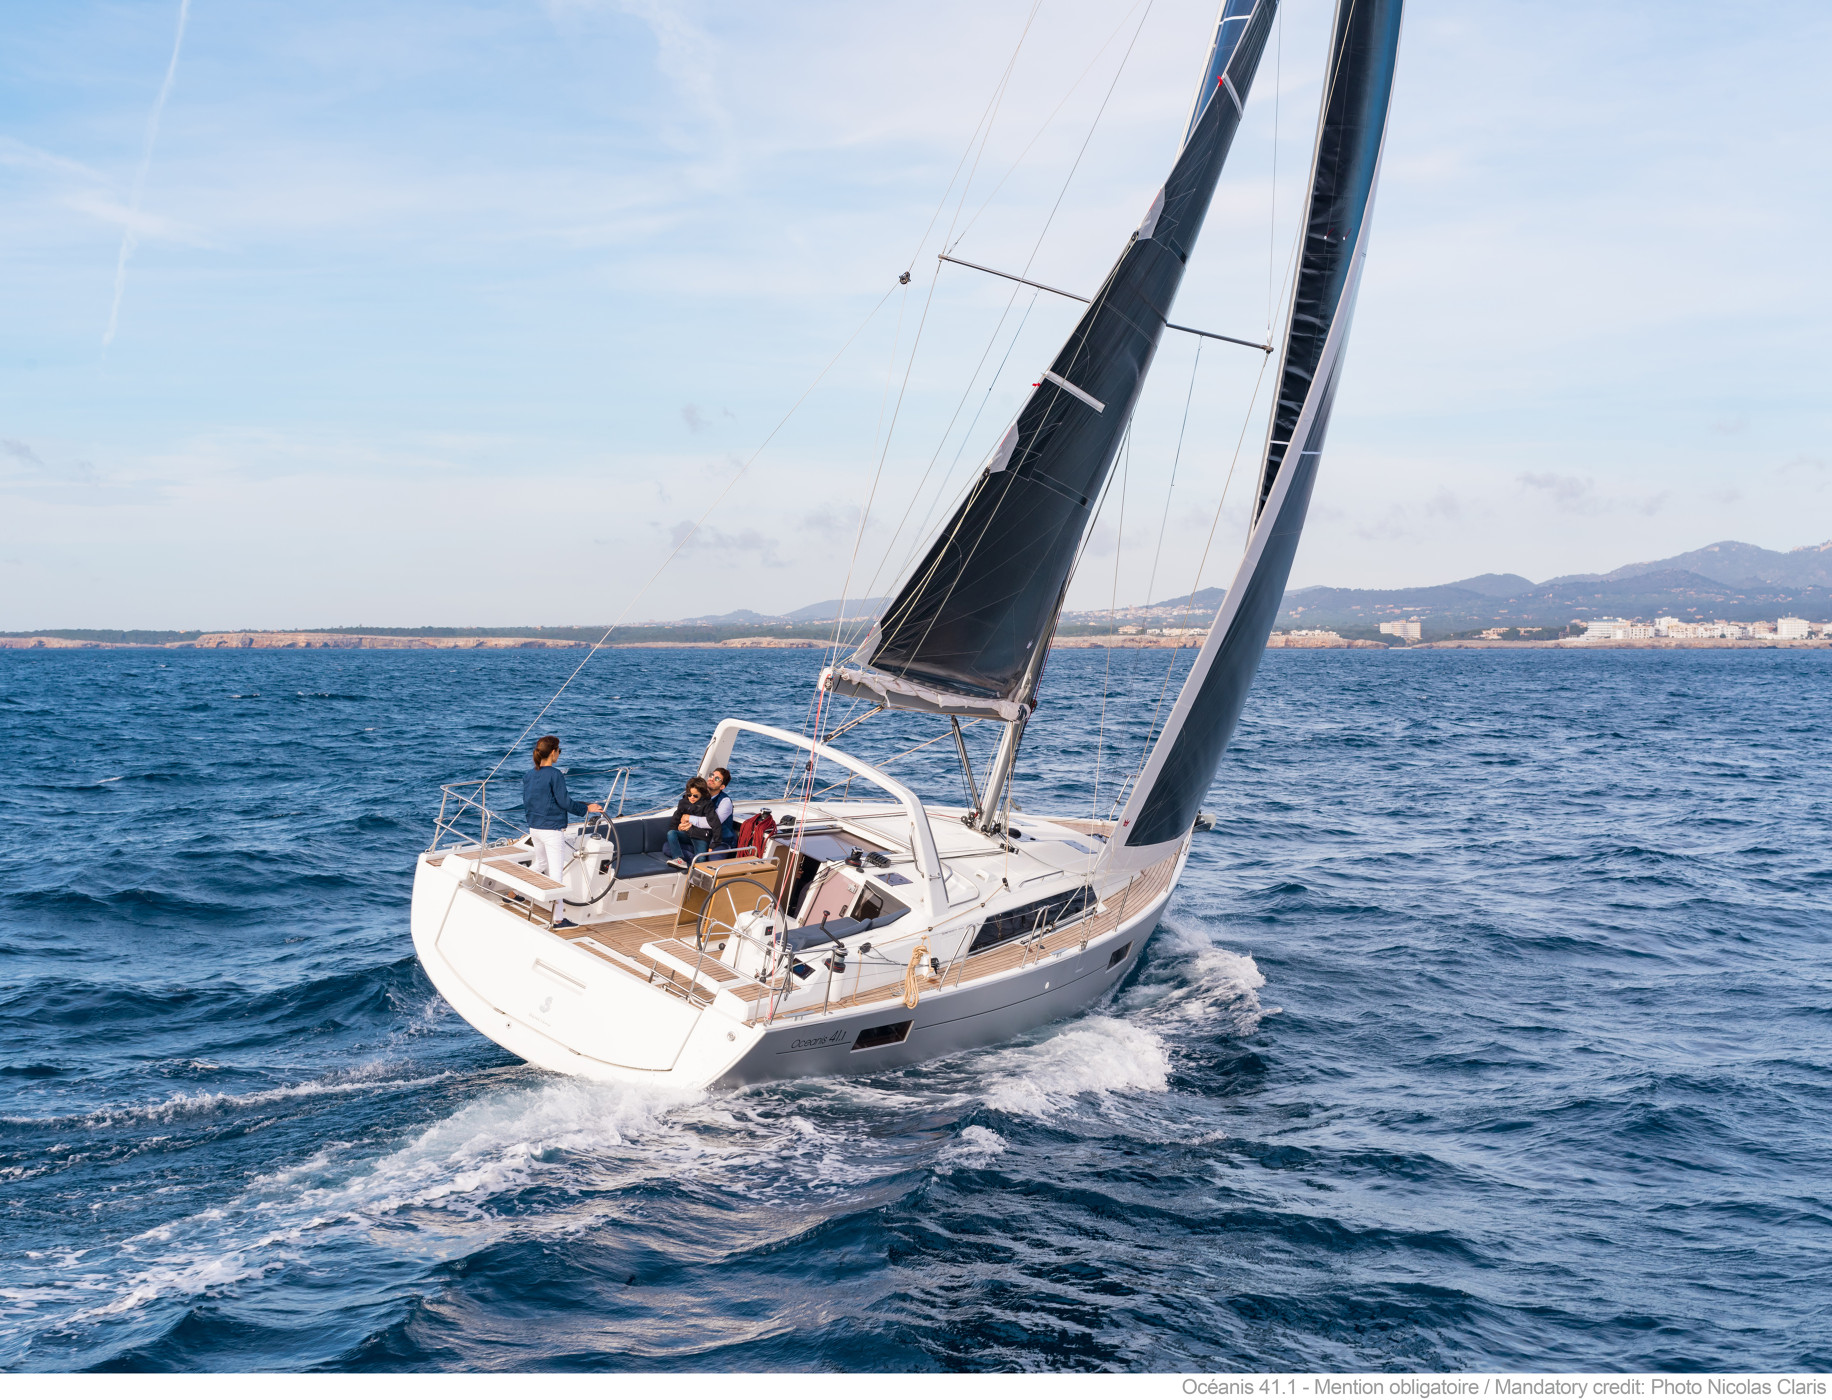 SALE SPECIAL – Beneteau 41.1 Hull #82. Save $14,586! Now SOLD!